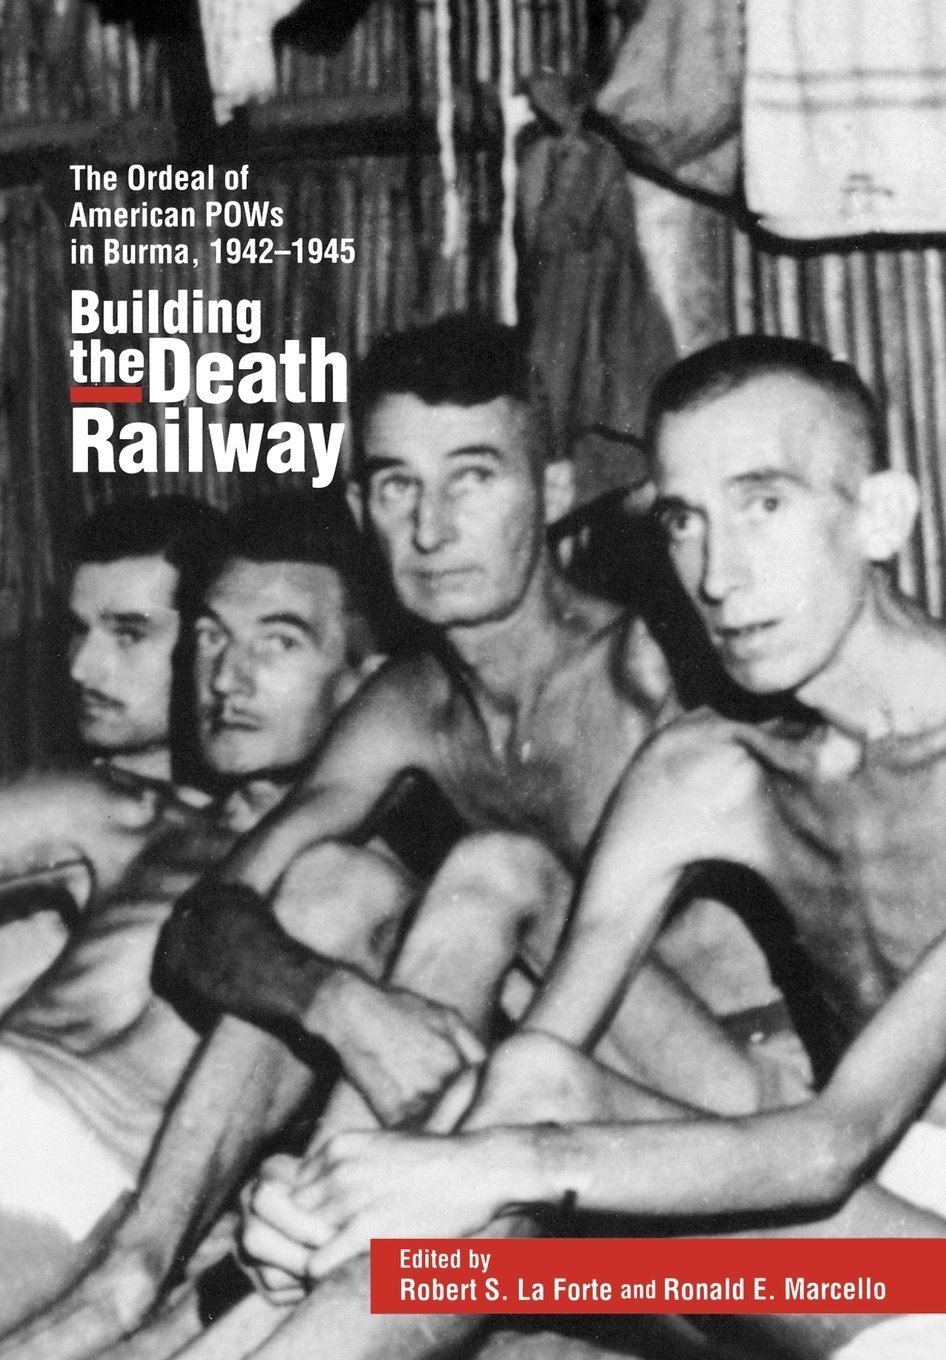 building-the-death-railway-the-ordeal-of-american-pows-in-burma-1942-1945-48